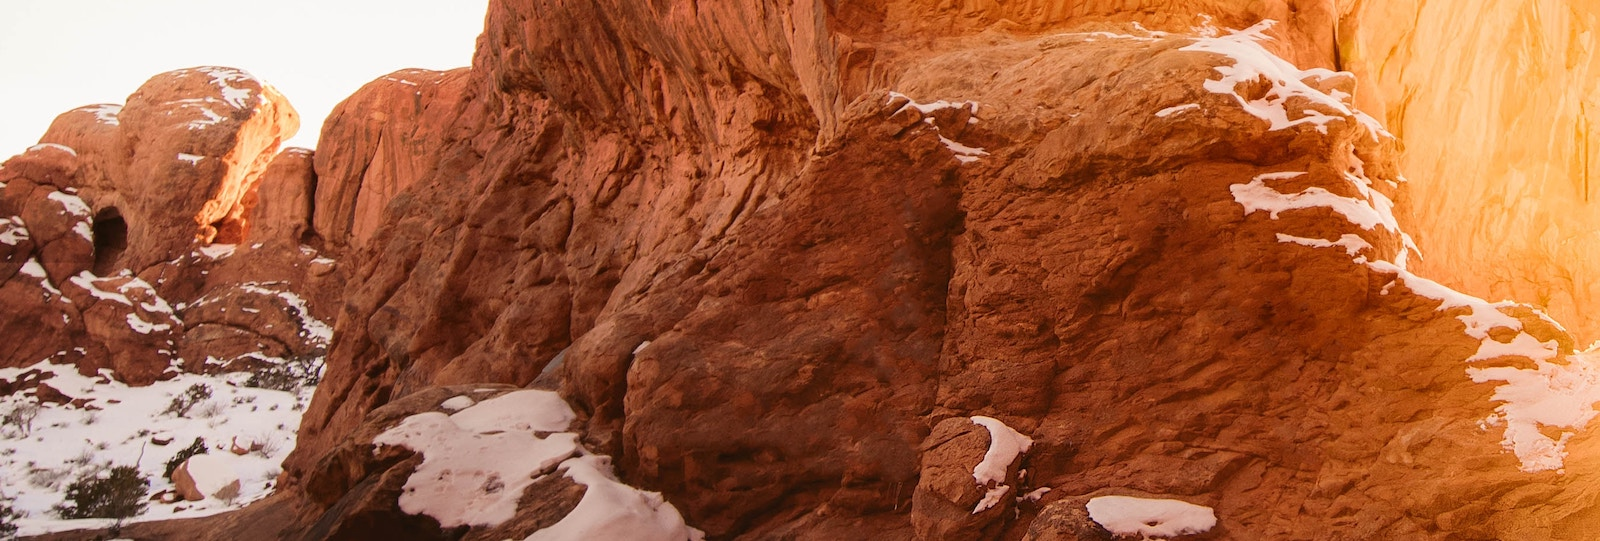 Red rock formation with sunlight streaming in.